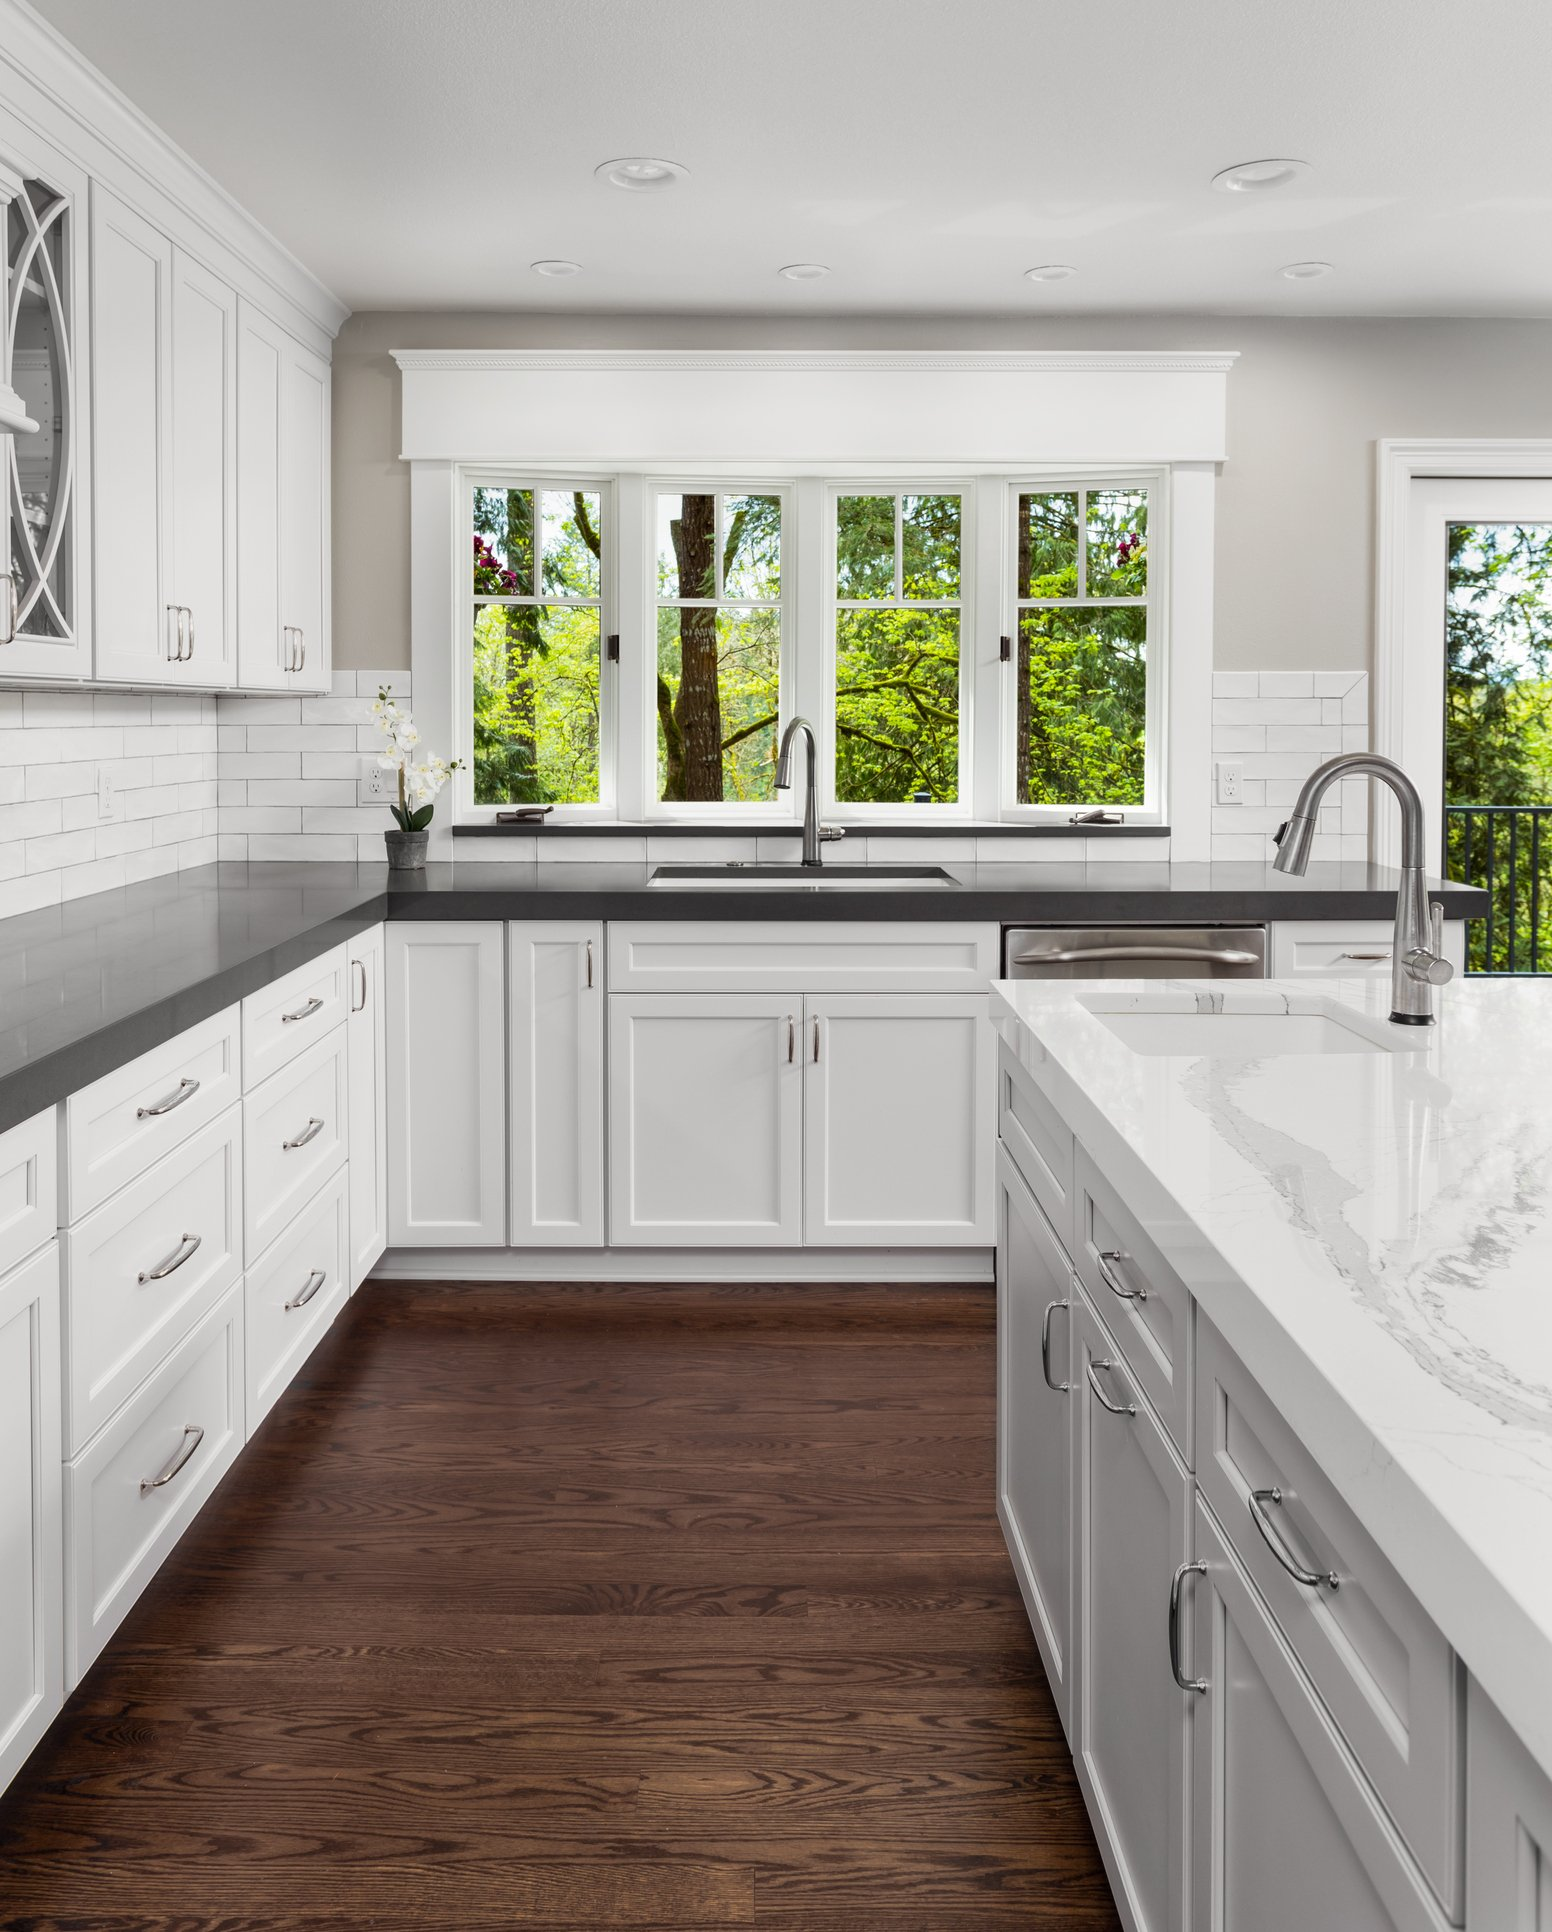 Reface Or Replace Kitchen Cabinets: Desirable Kitchens And Refacing